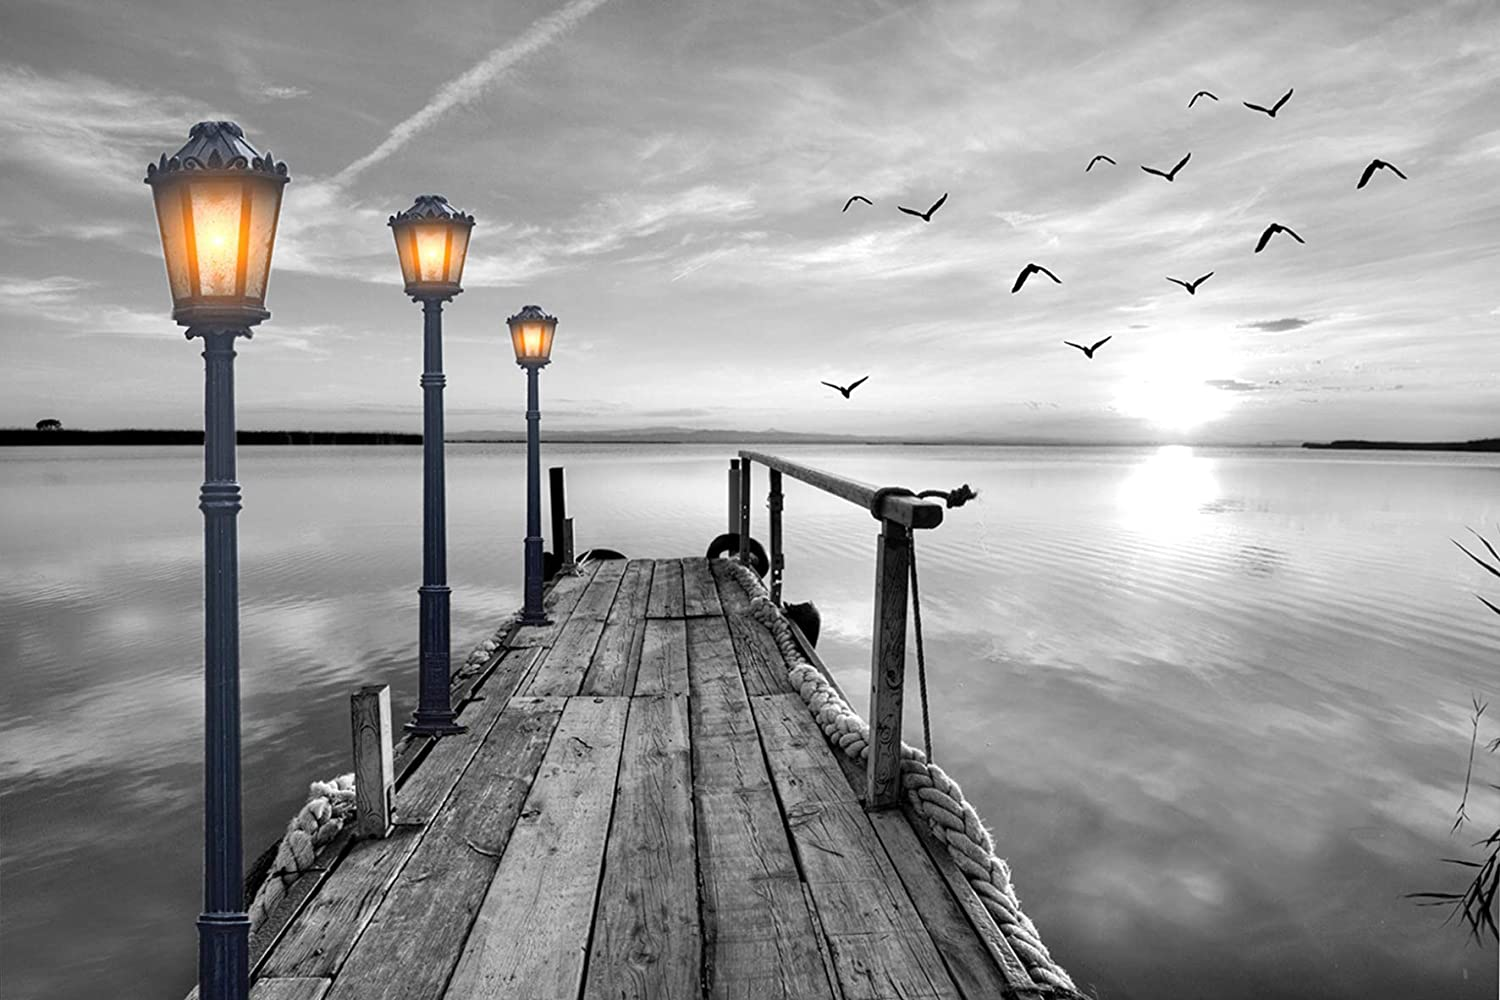 Wall Art Canvas Print – Black White Beach Pier Seagull Landscape Picture for Wall Decor Painting Ready to Hang - 24x36 inches